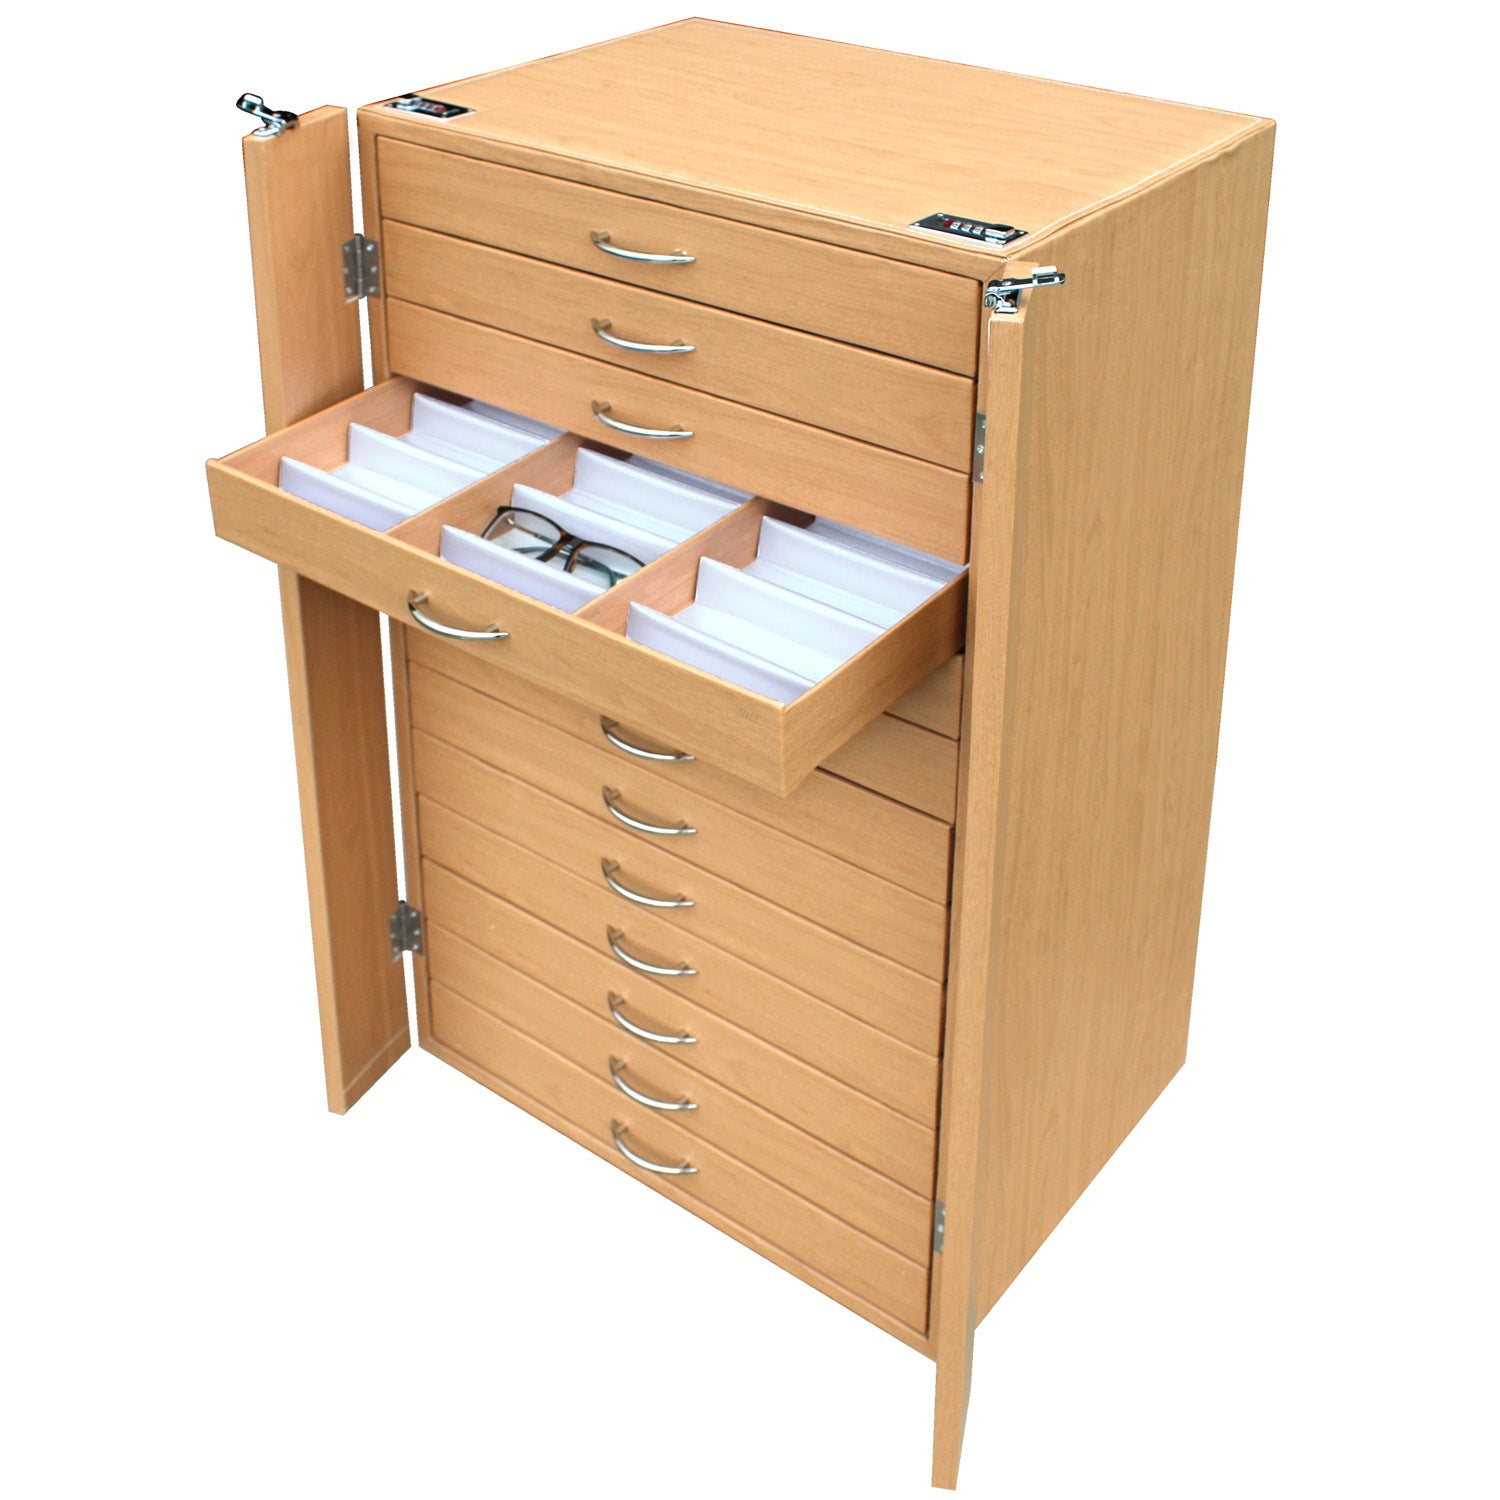 #D206-13LTBR  234 Pairs Frame Storage Cabinet- Eyewear & Sunglasses Display - with Lock and Wheels | APEX International